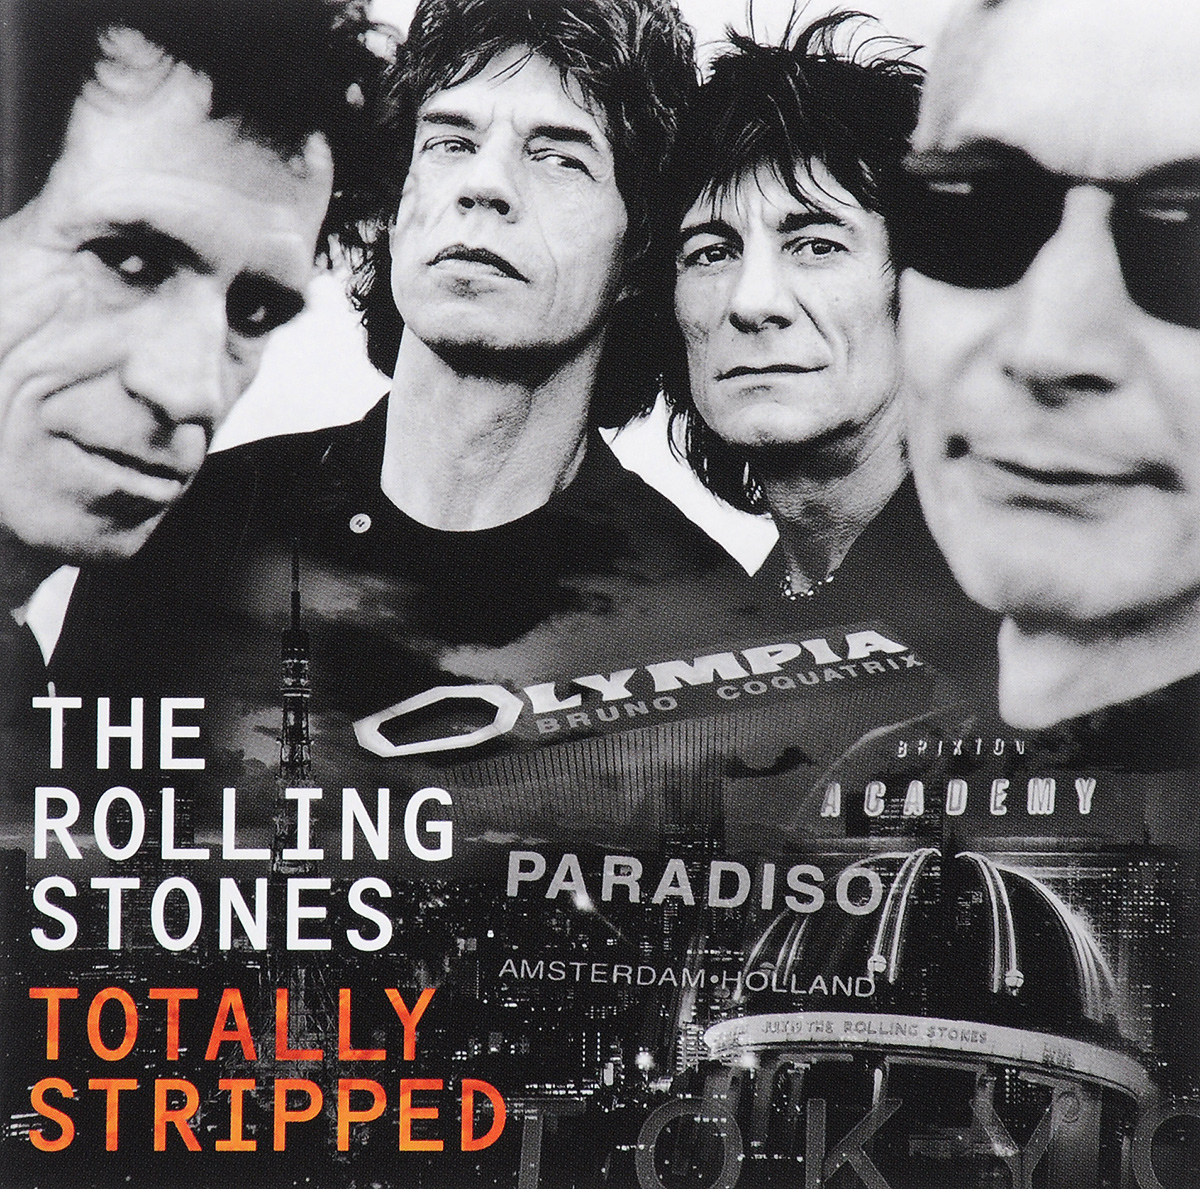 The Rolling Stones The Rolling Stones. Totally Stripped (CD + DVD) рубашка поло printio the rolling stones